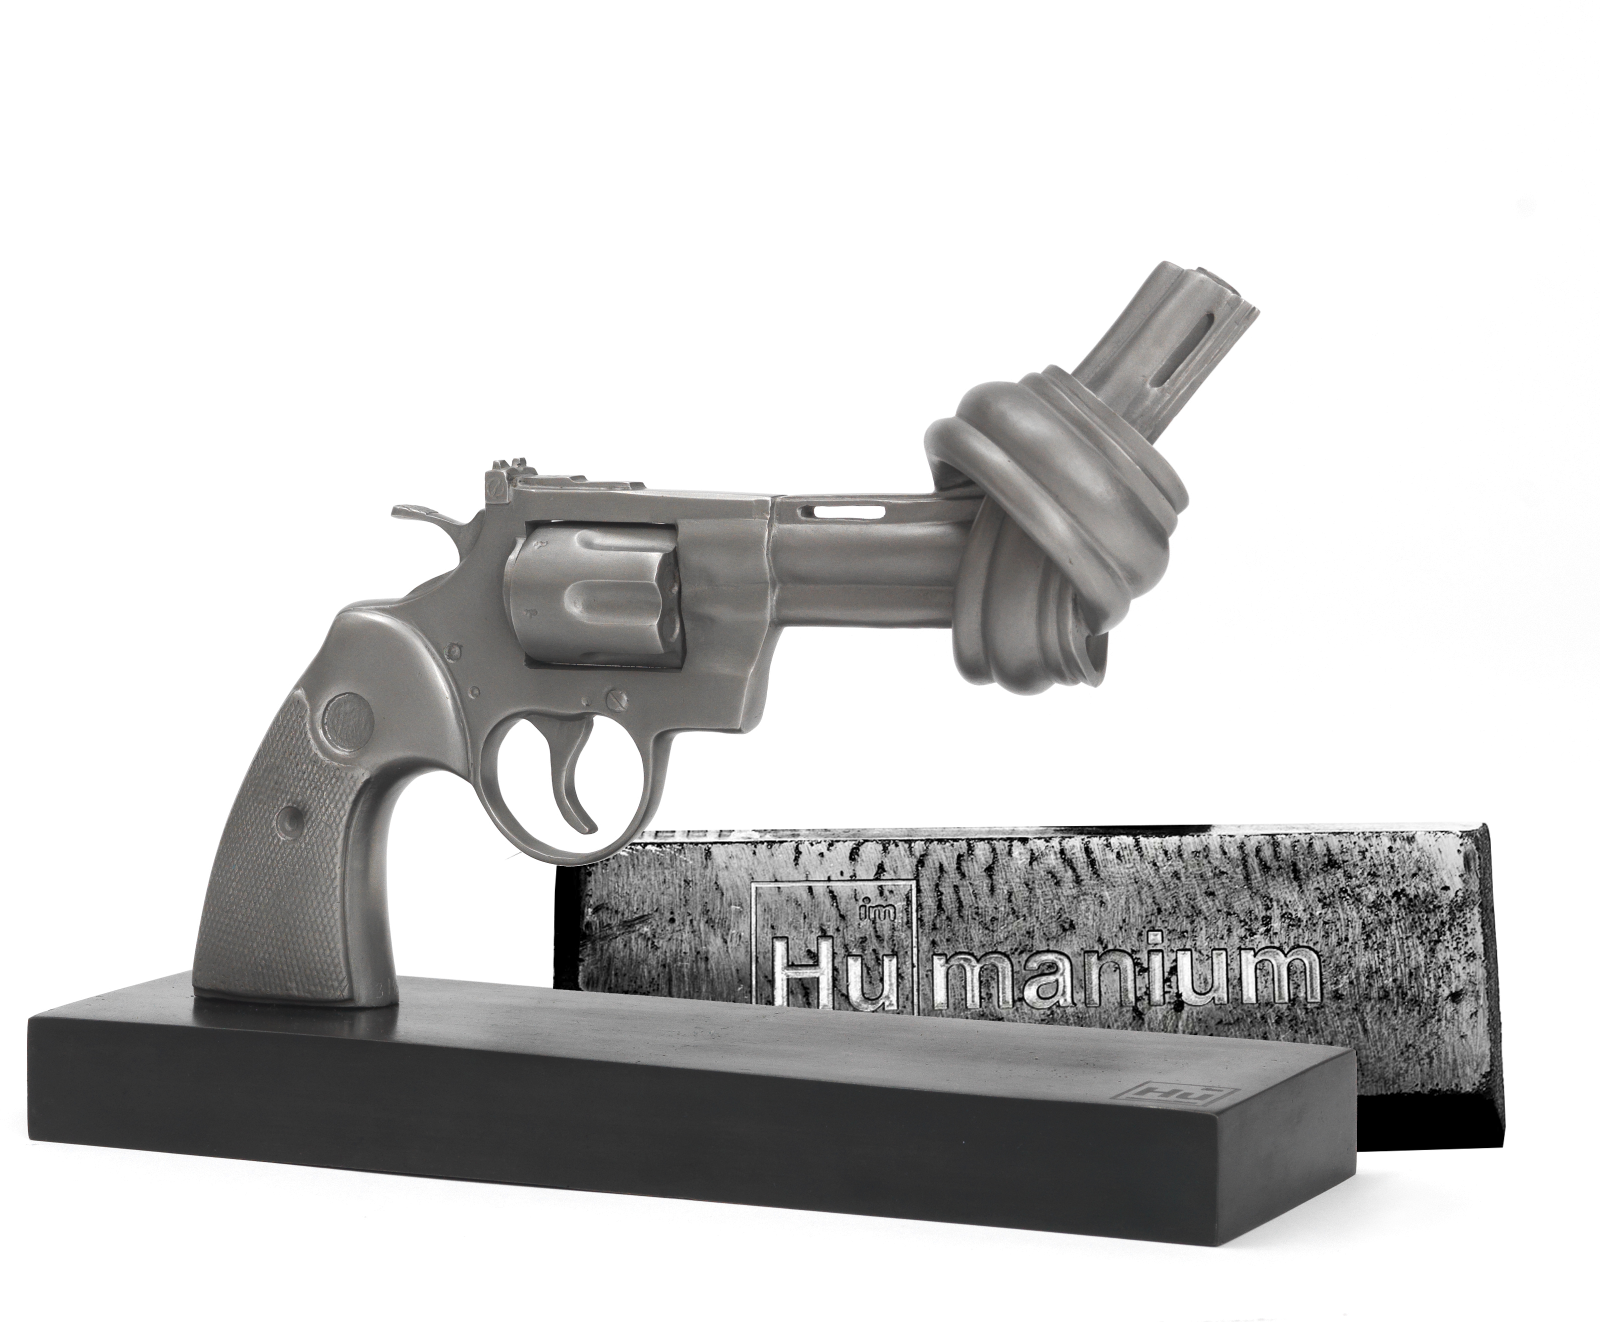 The world famous 'Non-Violence' knotted sculpture is now presented as a limited edition made of Humanium Metal